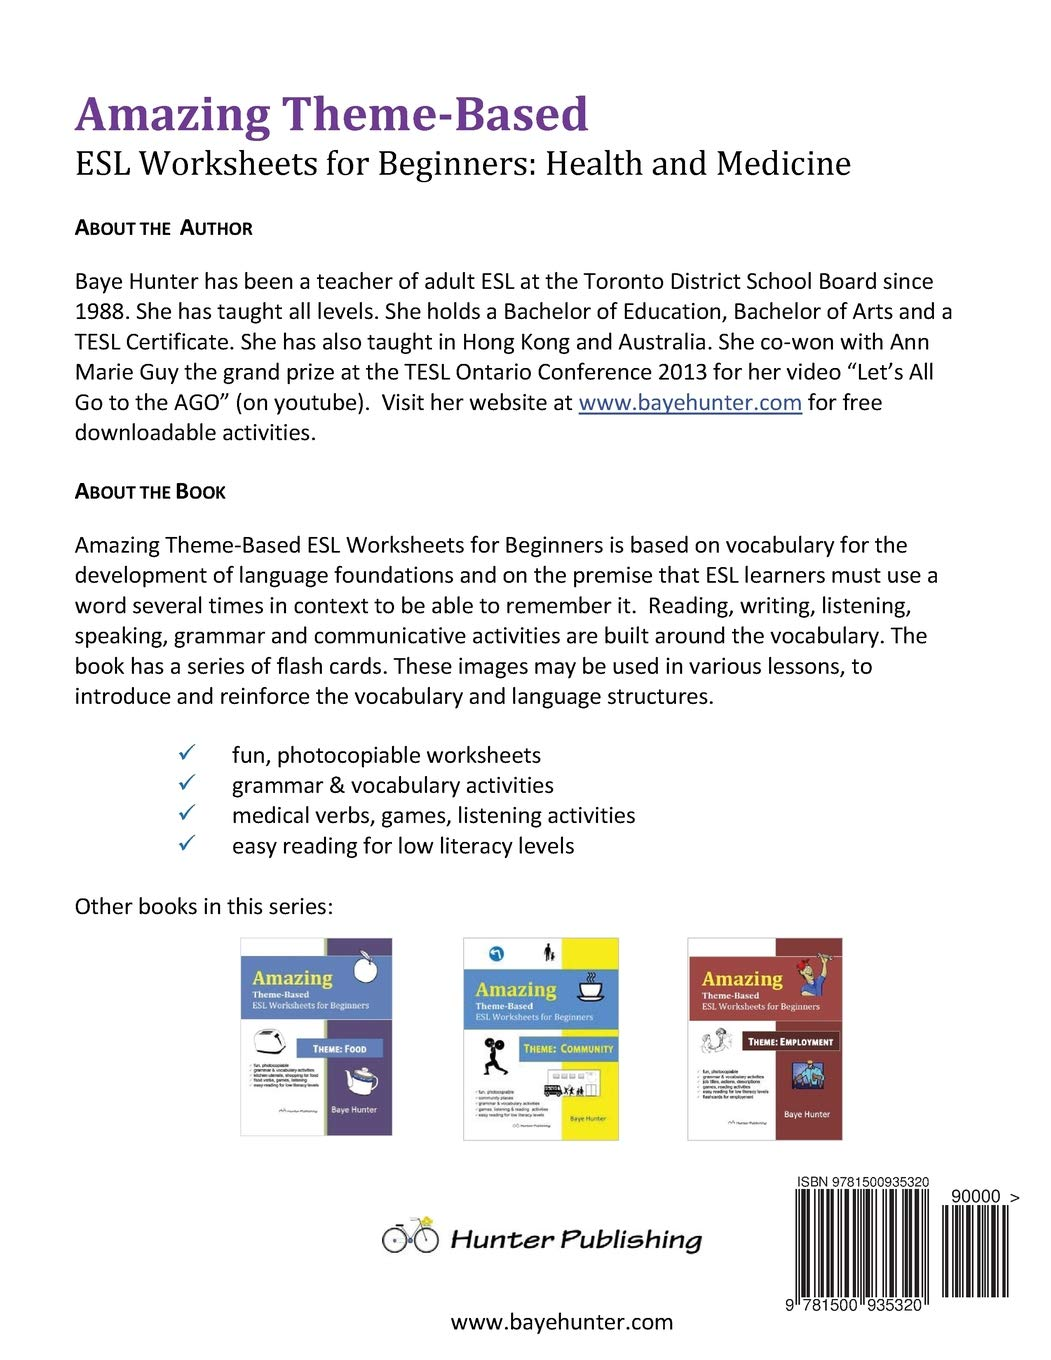 Amazing Theme-based ESL Worksheets for Beginners  Theme: Health and